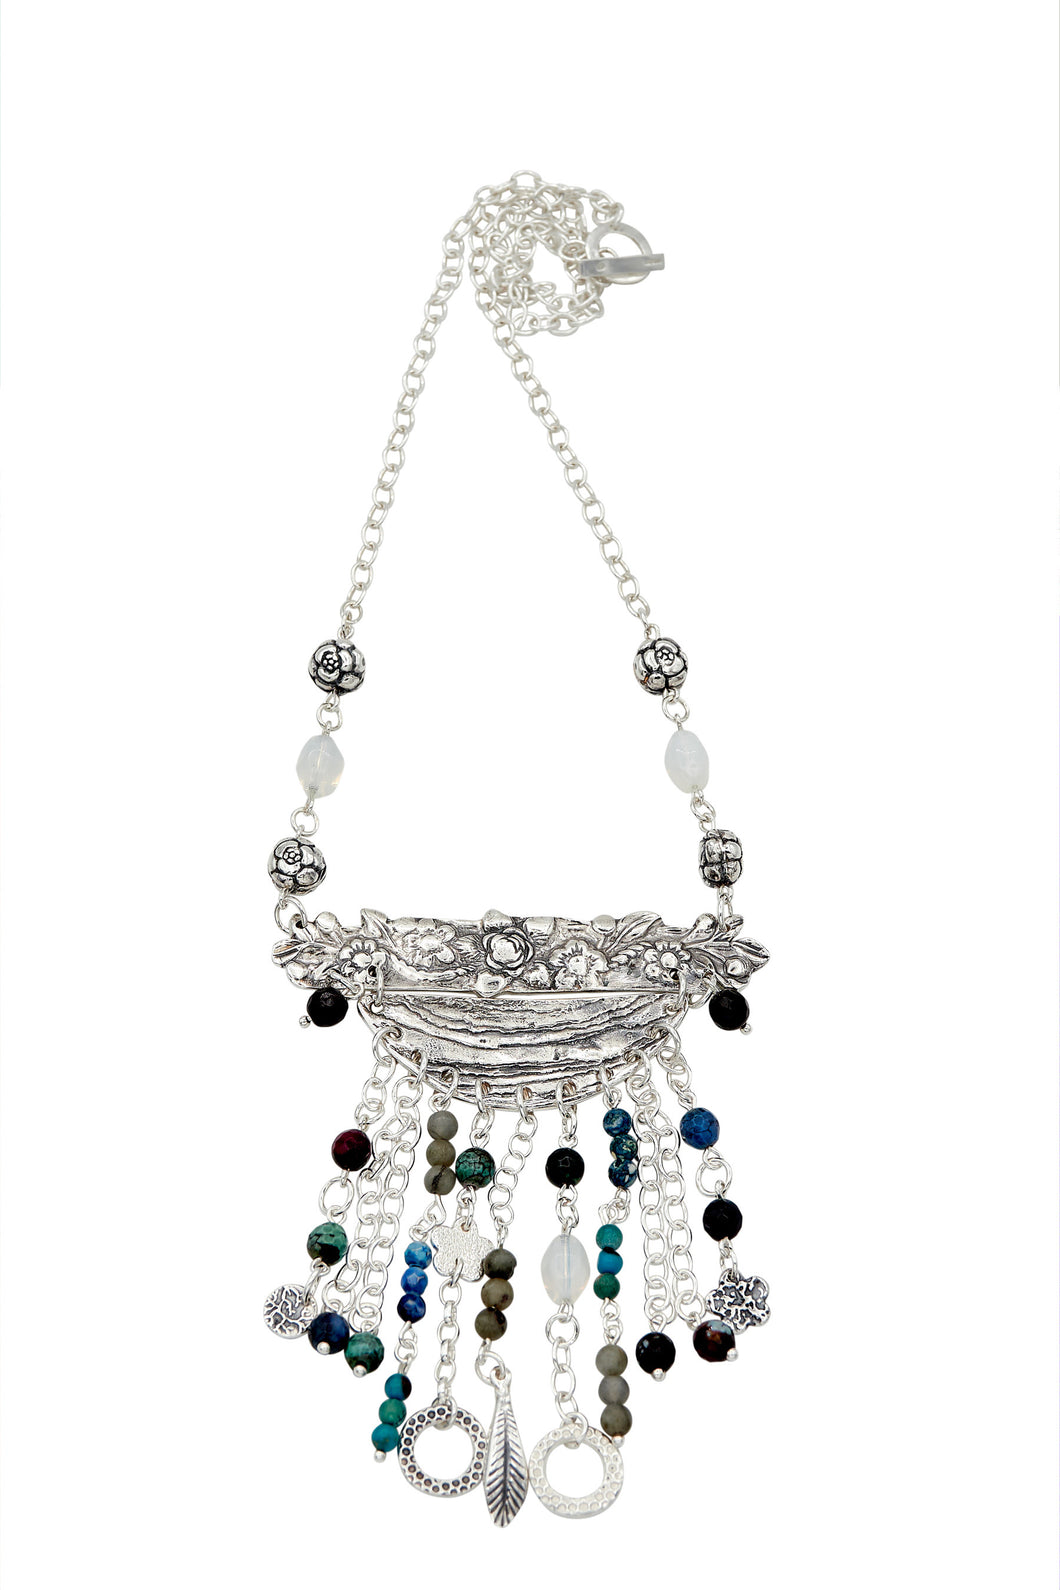 Super Pendant (Silver) with Moonstone, Labradorite and Agate beads